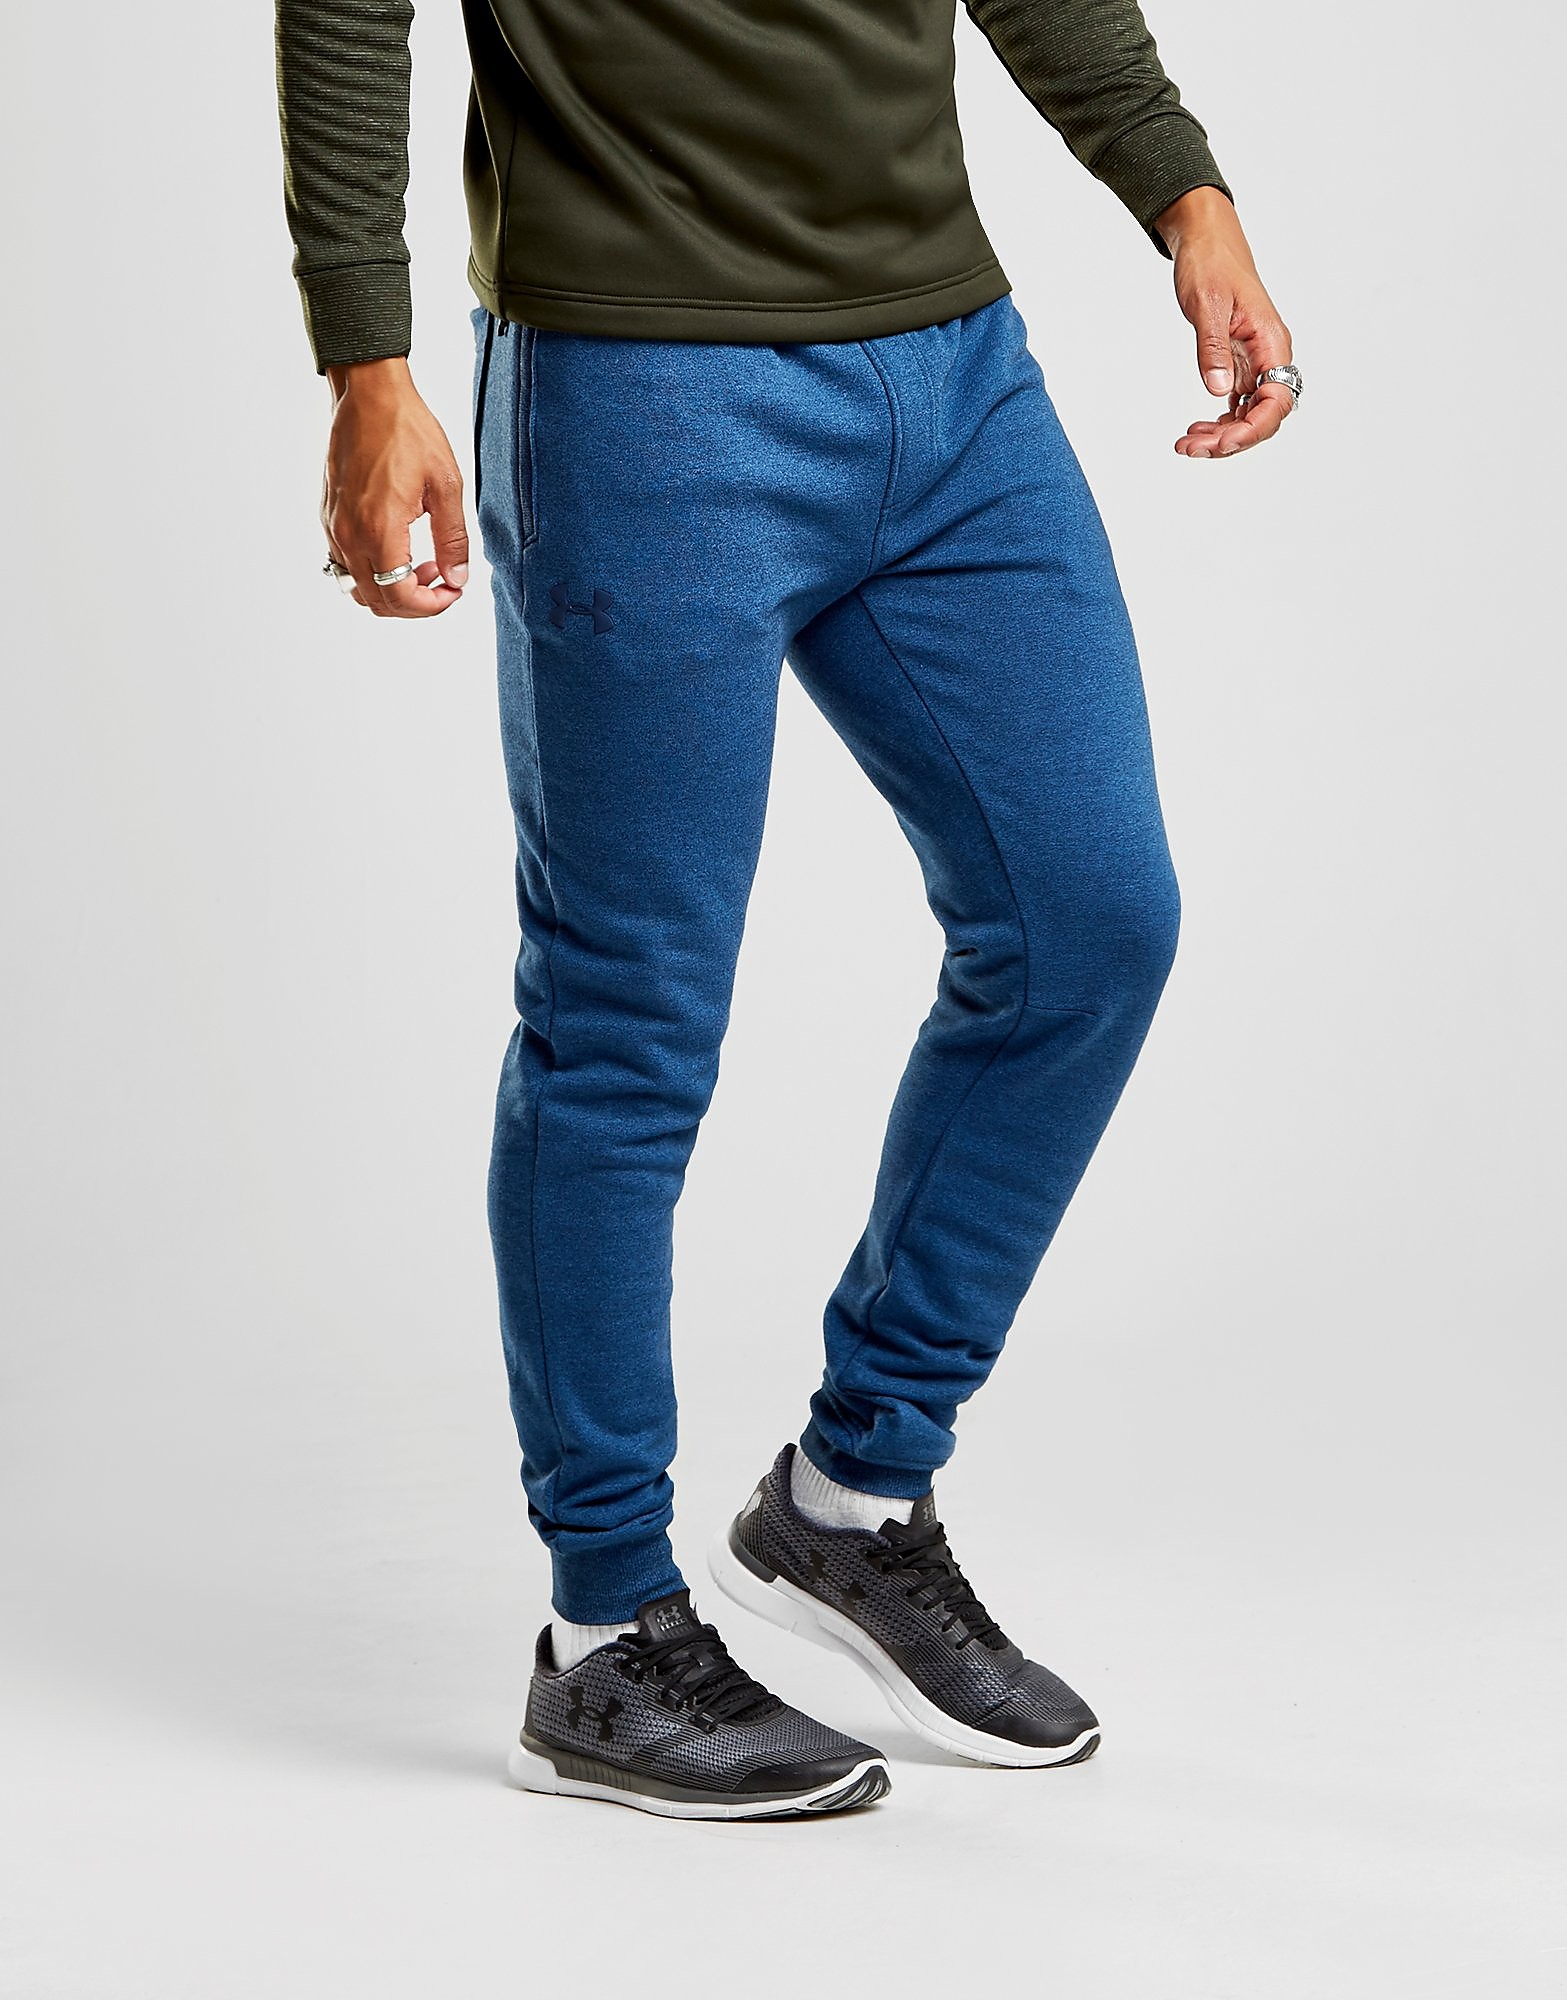 Under Armour Threadborne Fleece Pants